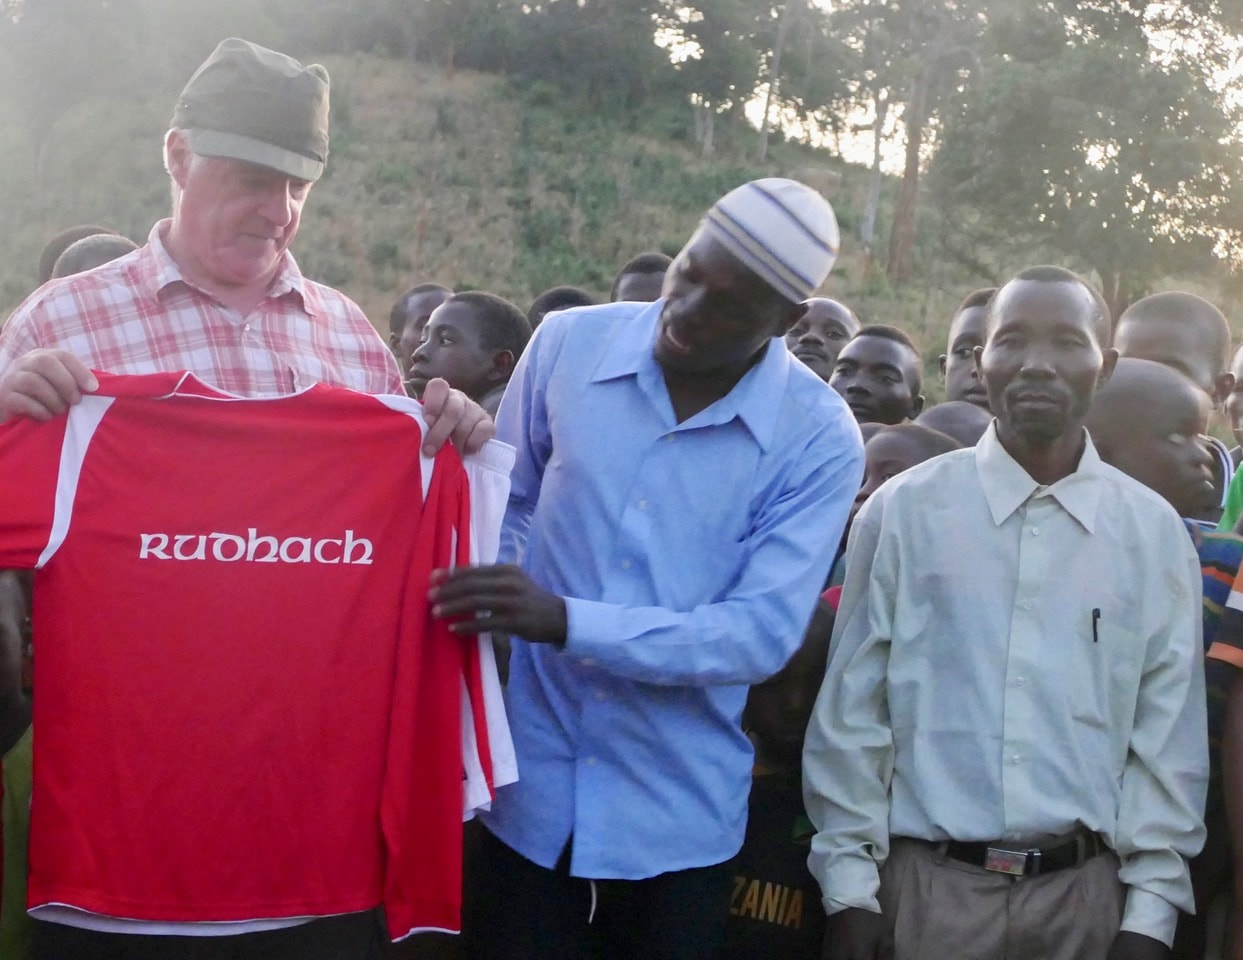 Alasdair giving out Point FC's old 'Rudhach' shirts